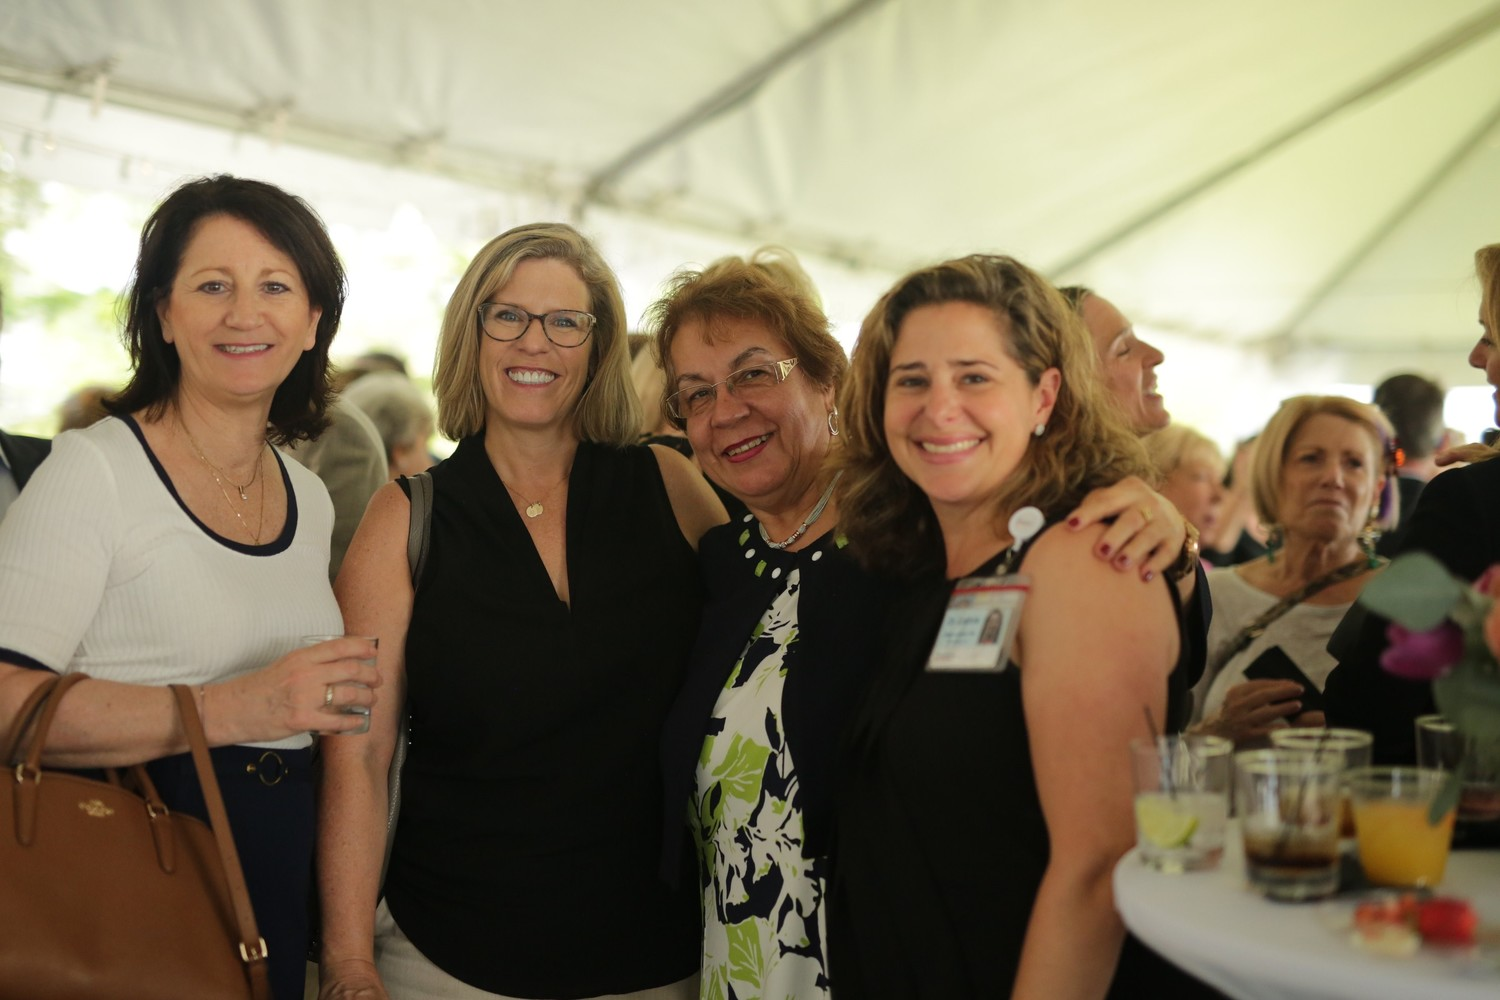 Rita Malie and Kelli Coughlin of the Tom Coughlin Jay Fund with Helena Gutirrez, LSW and Amanda Lochrie, PhD of Nemours